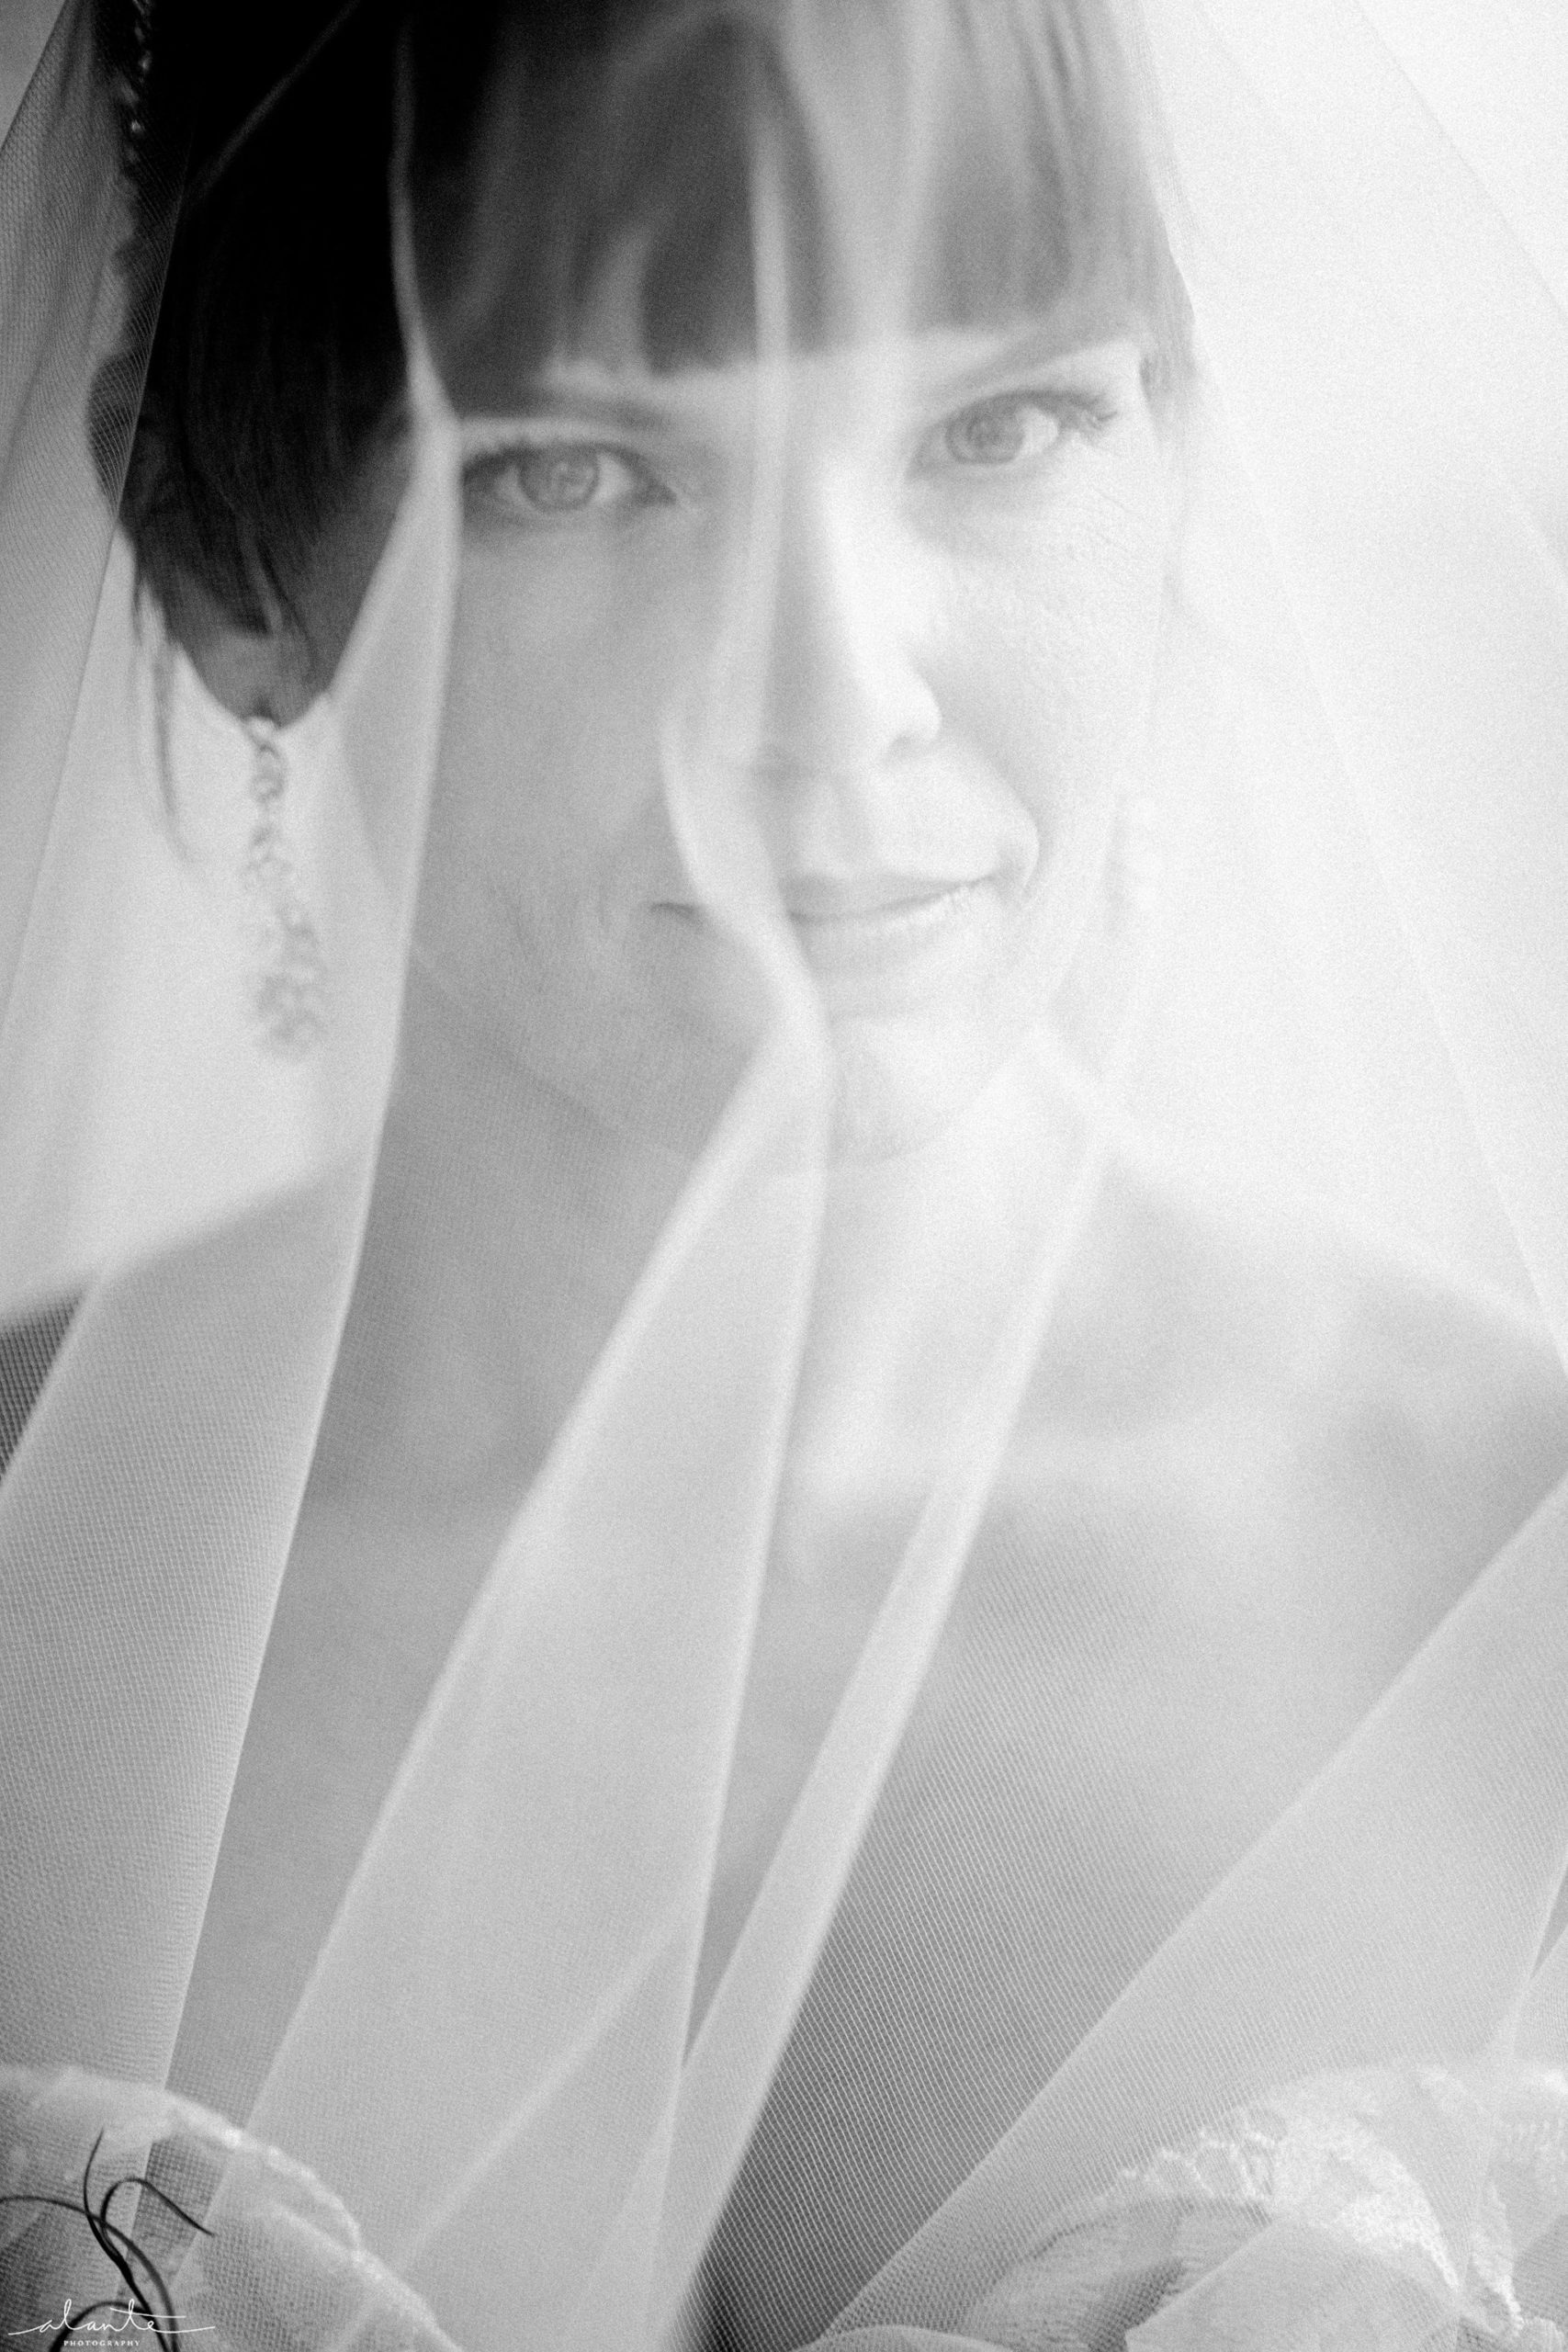 Black and white bridal portrait with veil at a winter wedding.